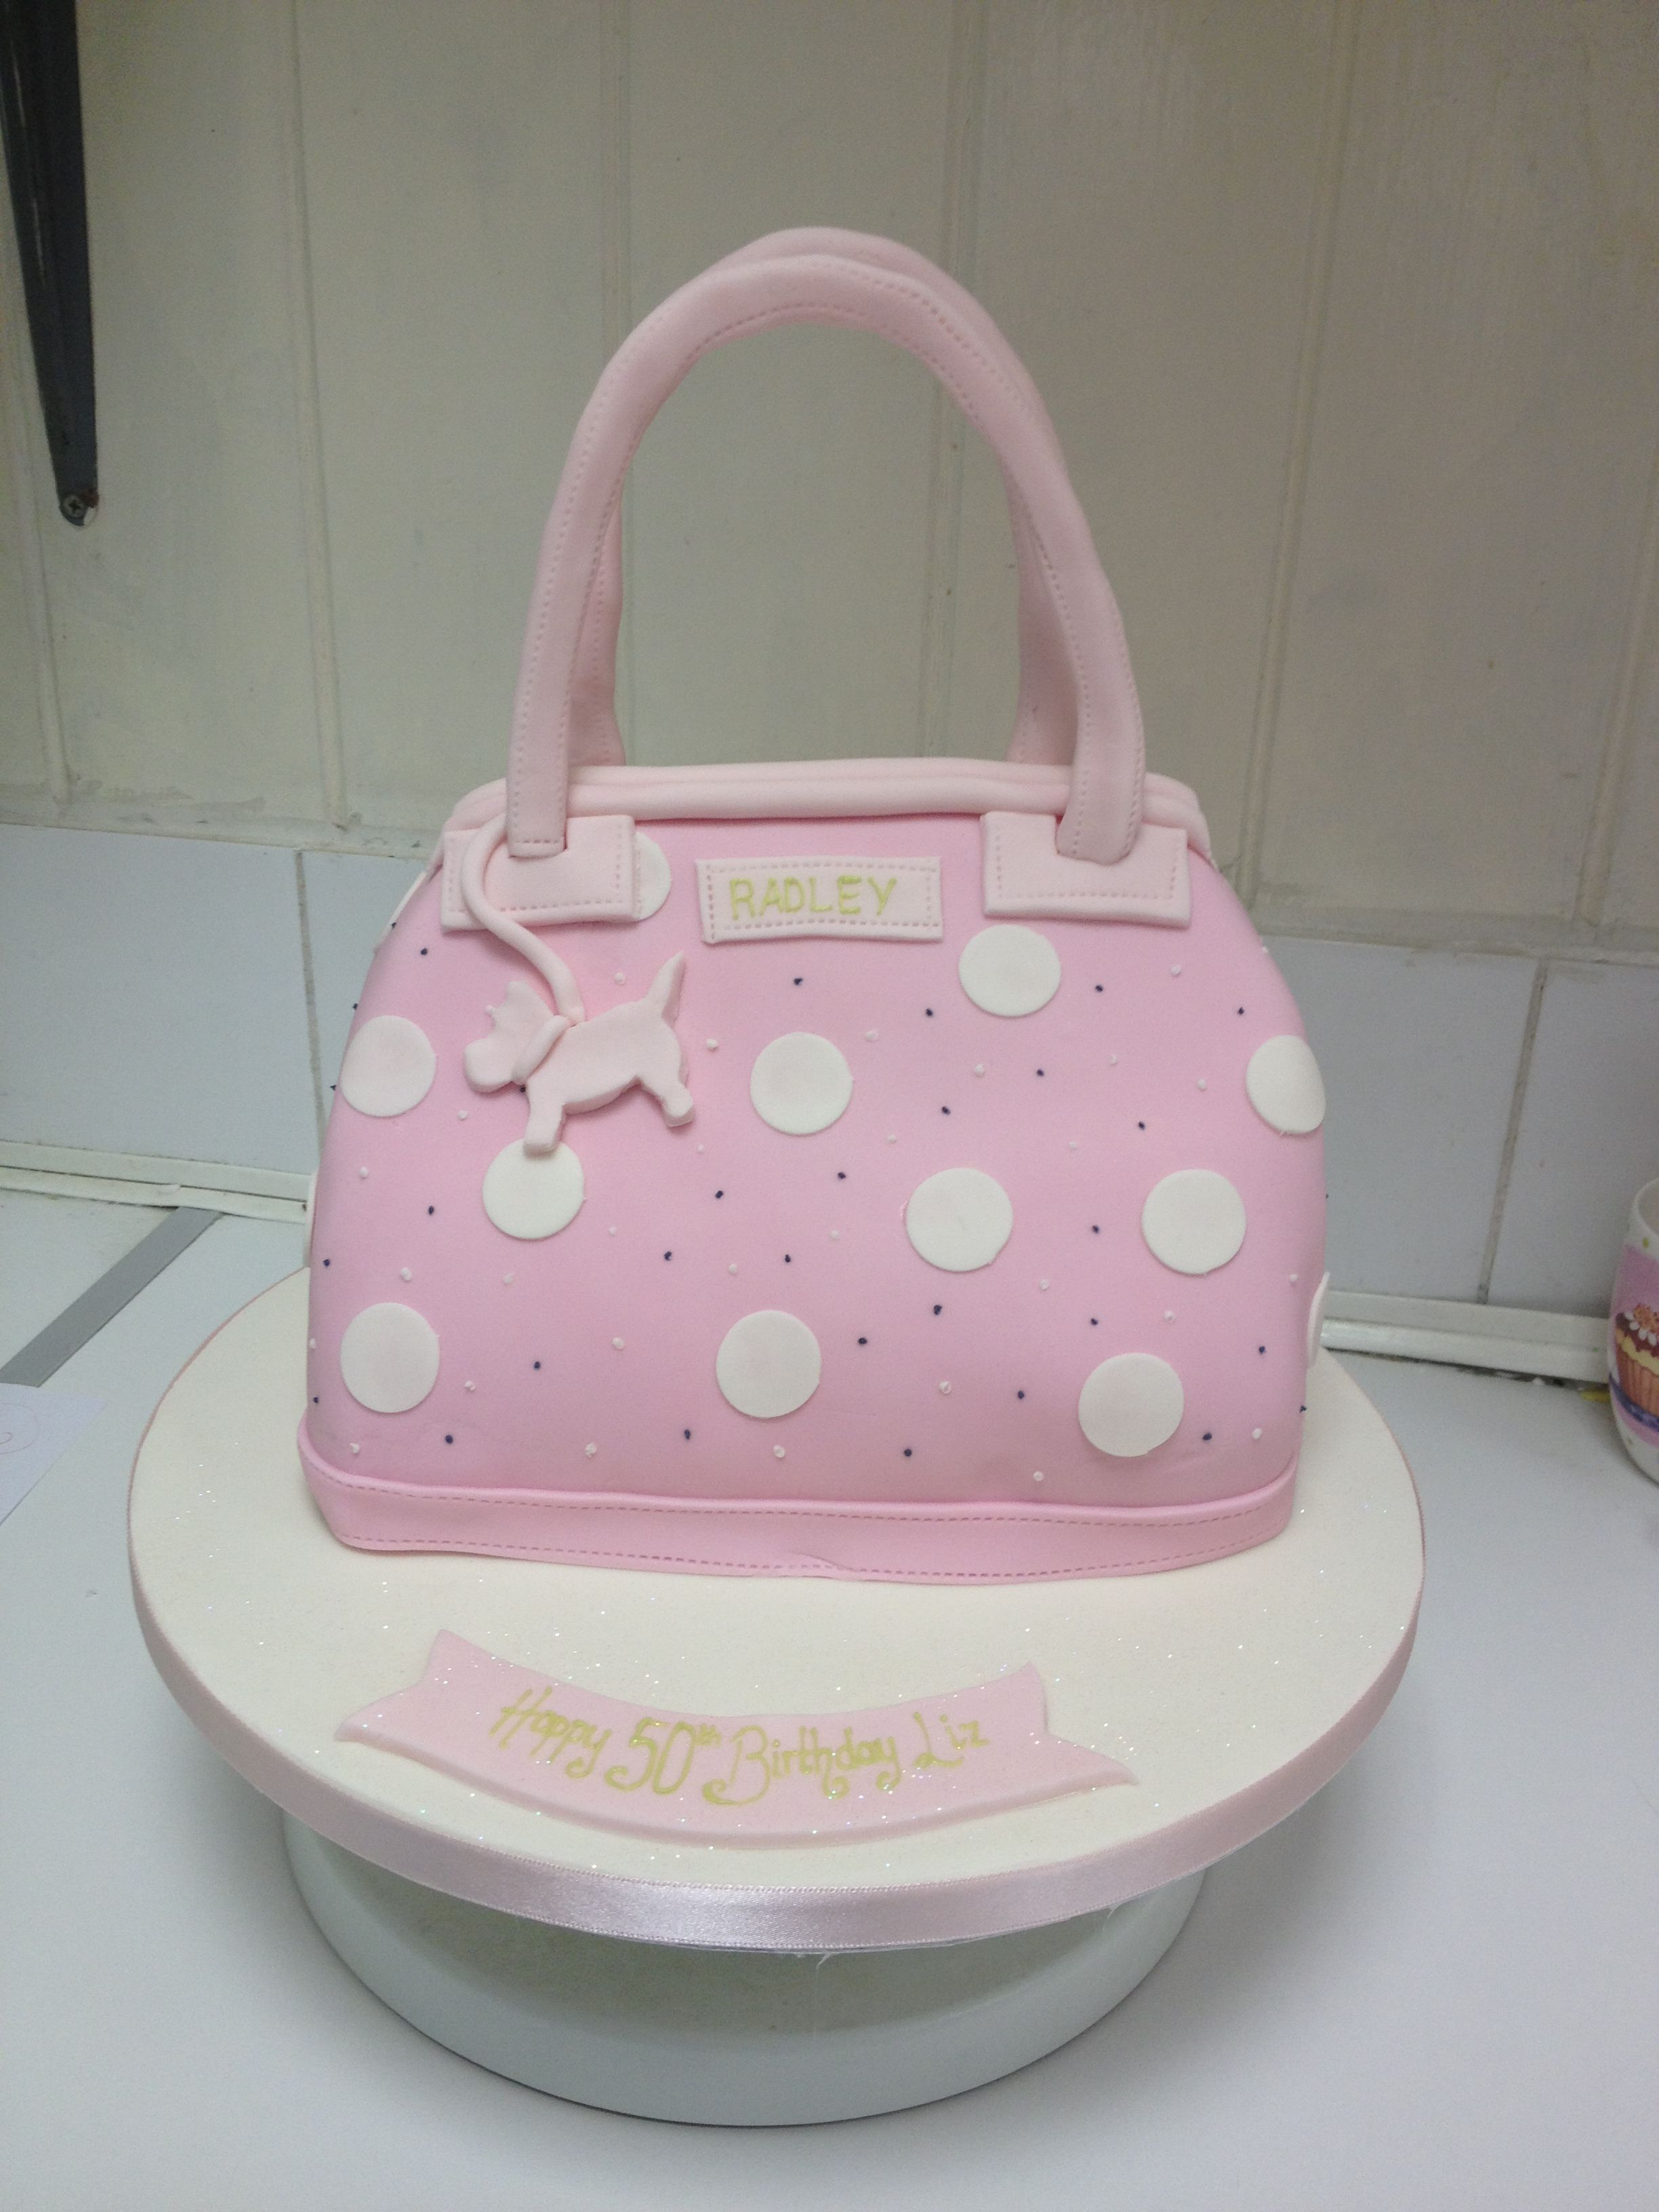 radley cake scottie in a sailboat a dorable our cherished radley handbag cake